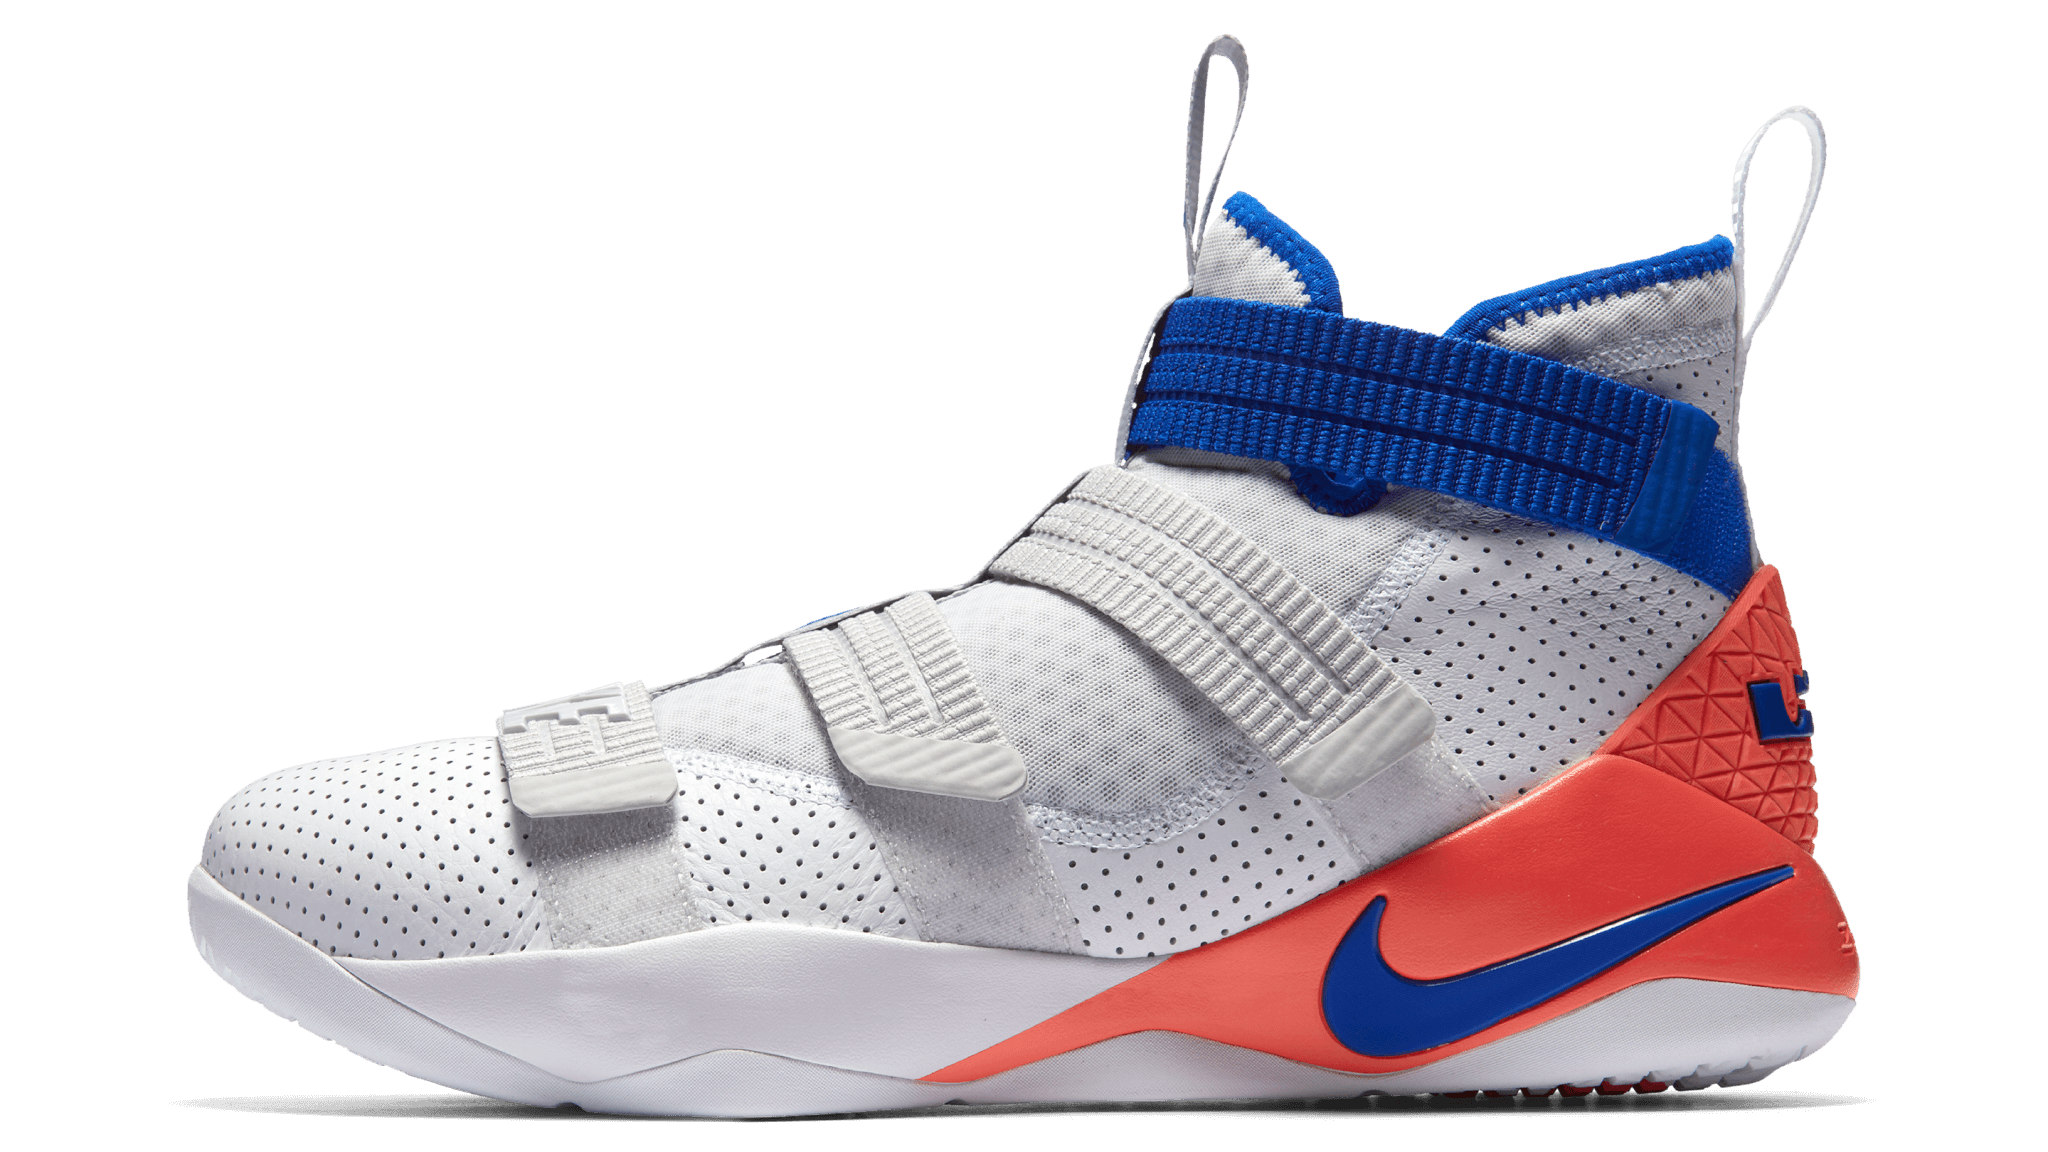 1e7e86e8eebc Nike Lebron Soldier 11 Performance Review